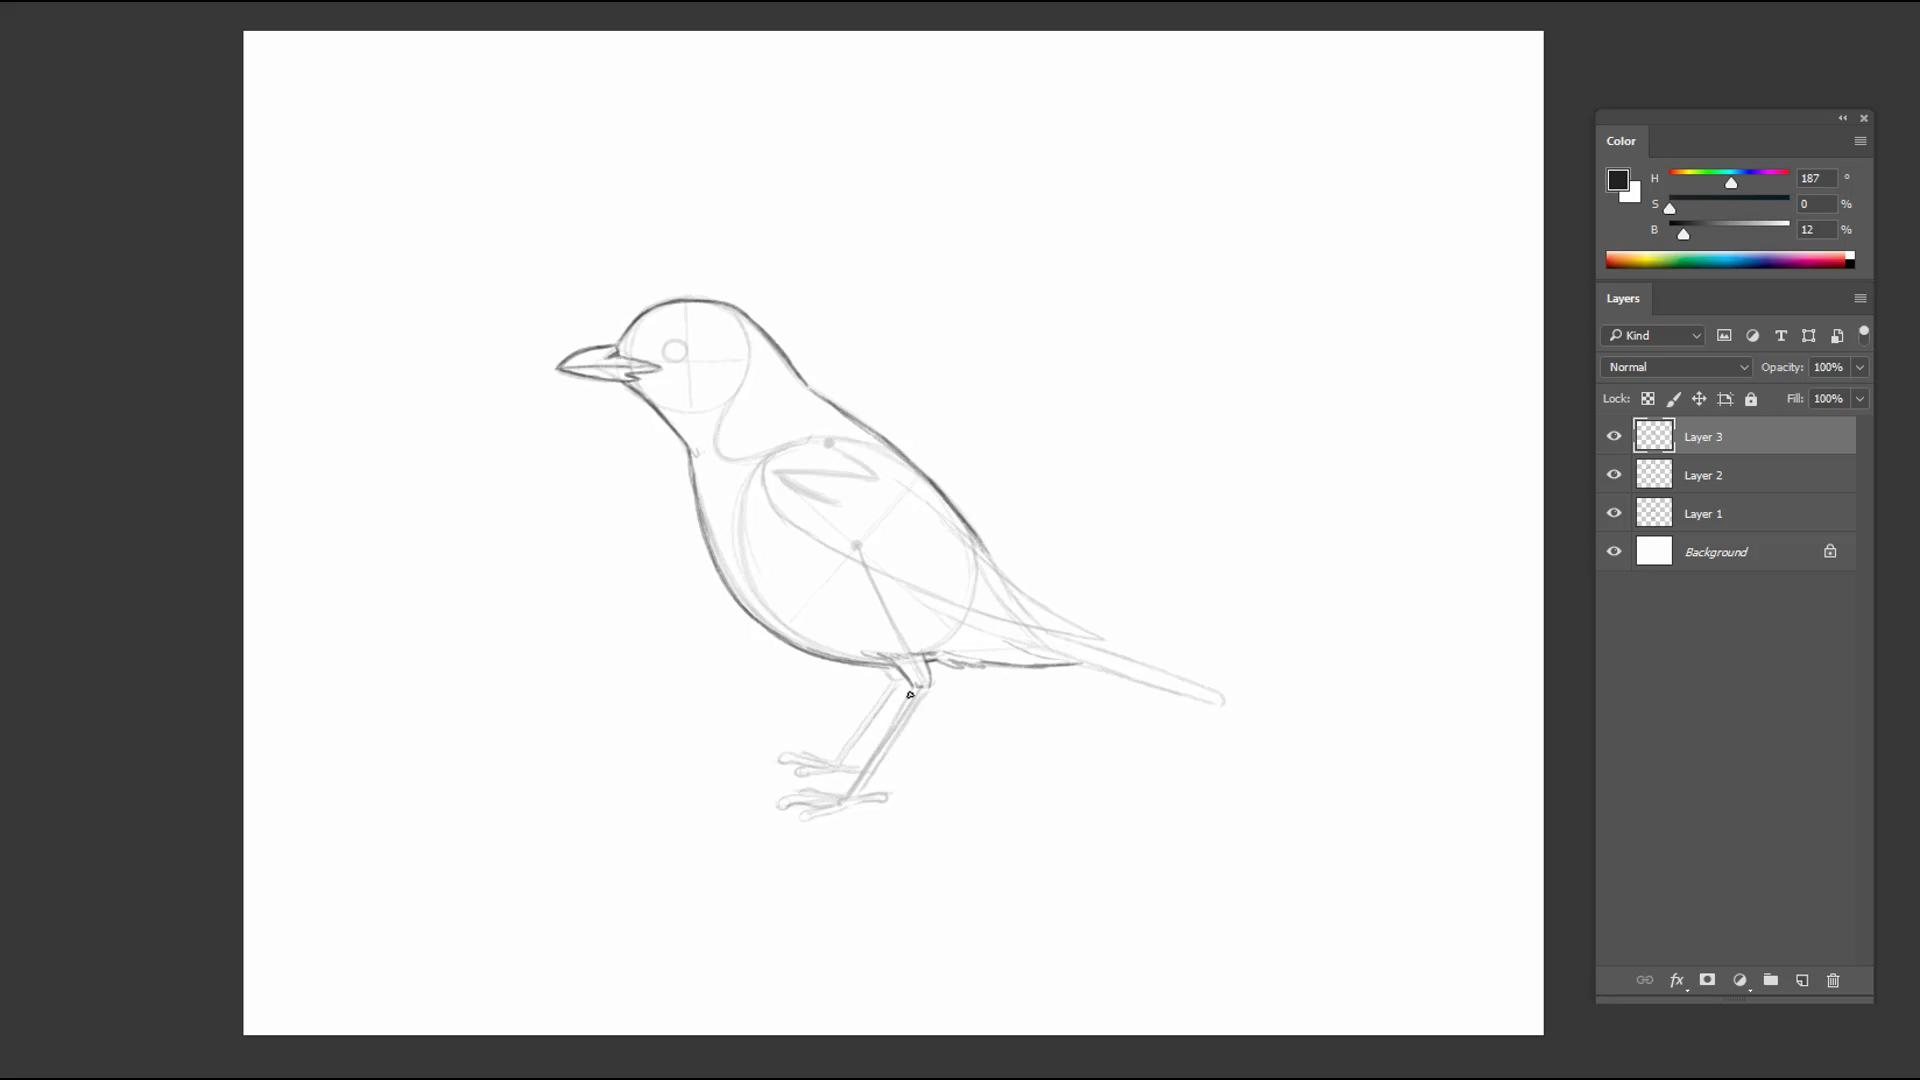 Basic pencil sketch of a bird